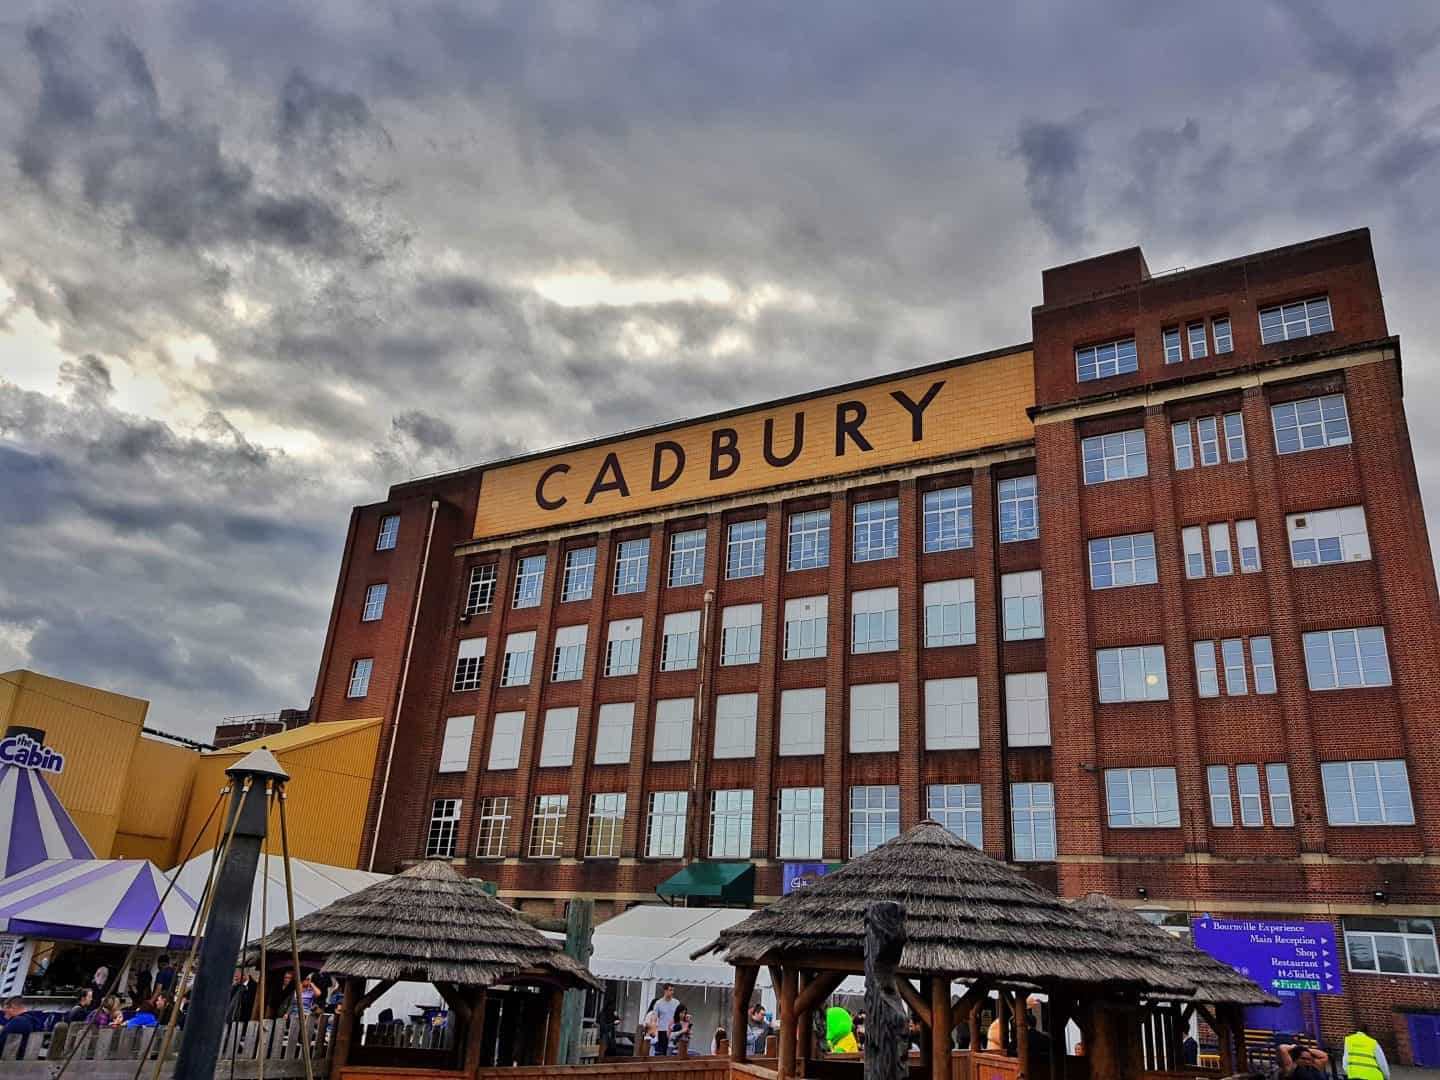 A family day out at Cadbury World Birmingham